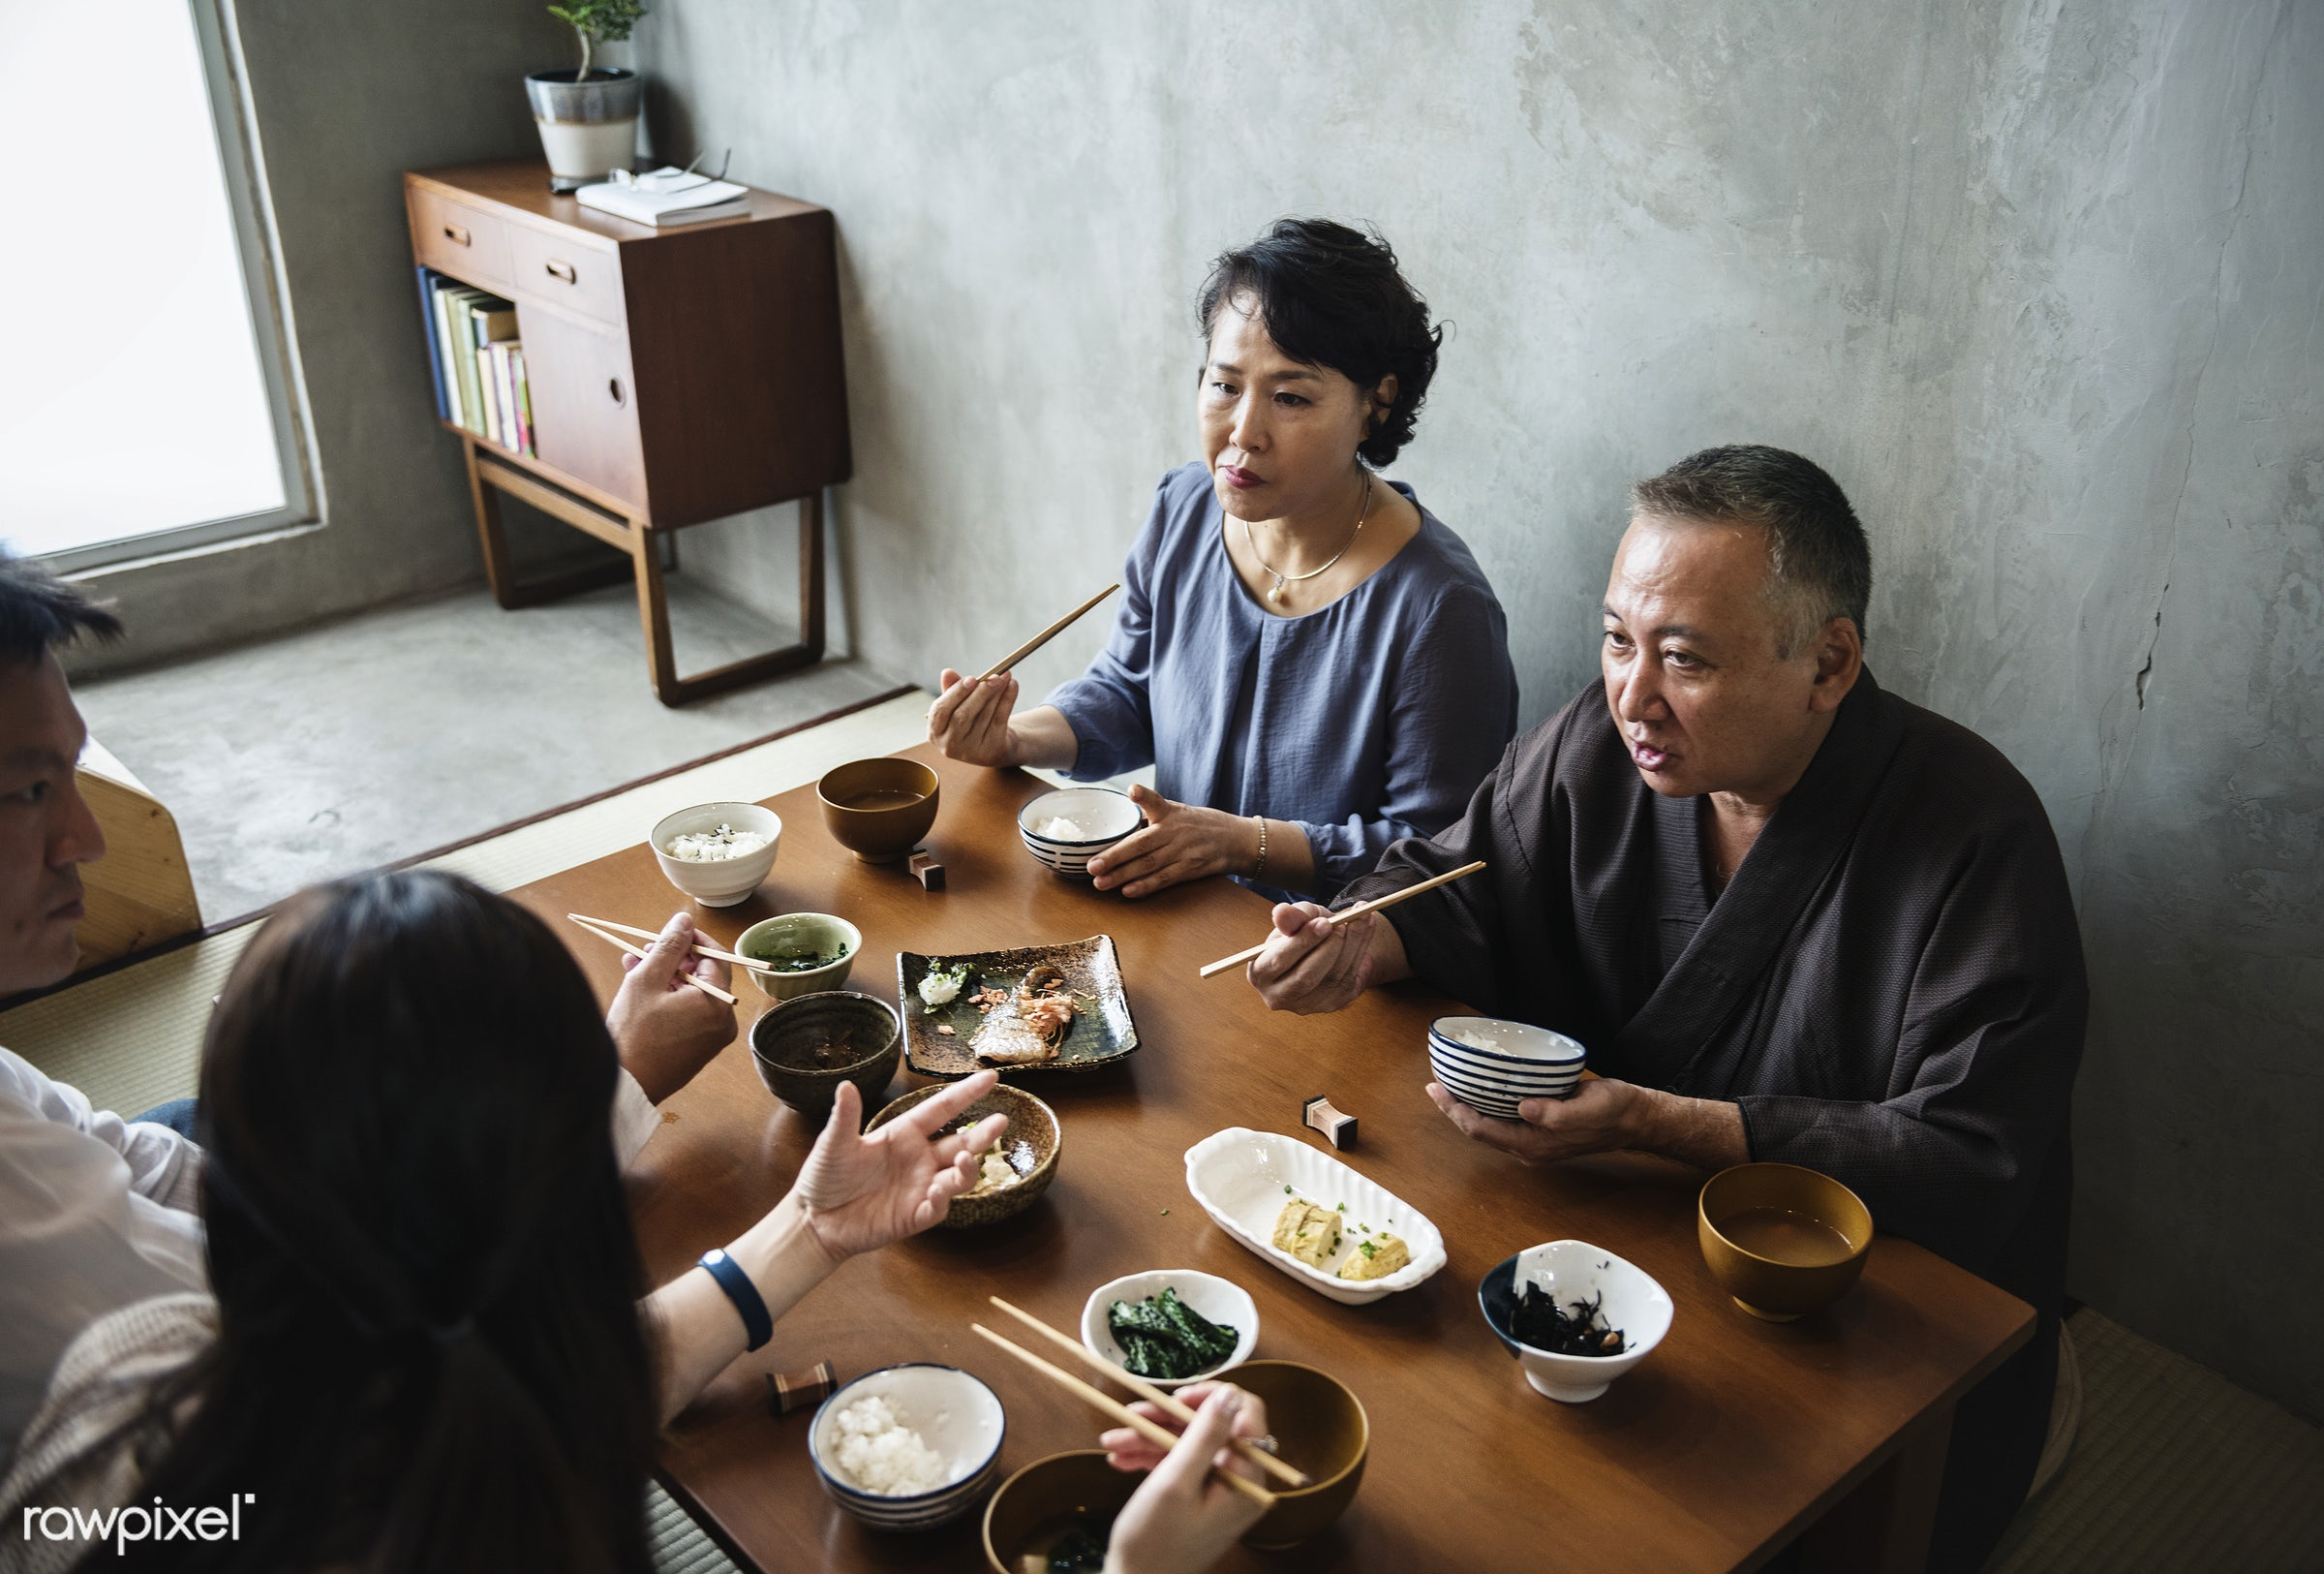 Japanese family eating - asia, asian, bonding, culture, dining, dinner, eating, family, food, group, happiness, home, japan...